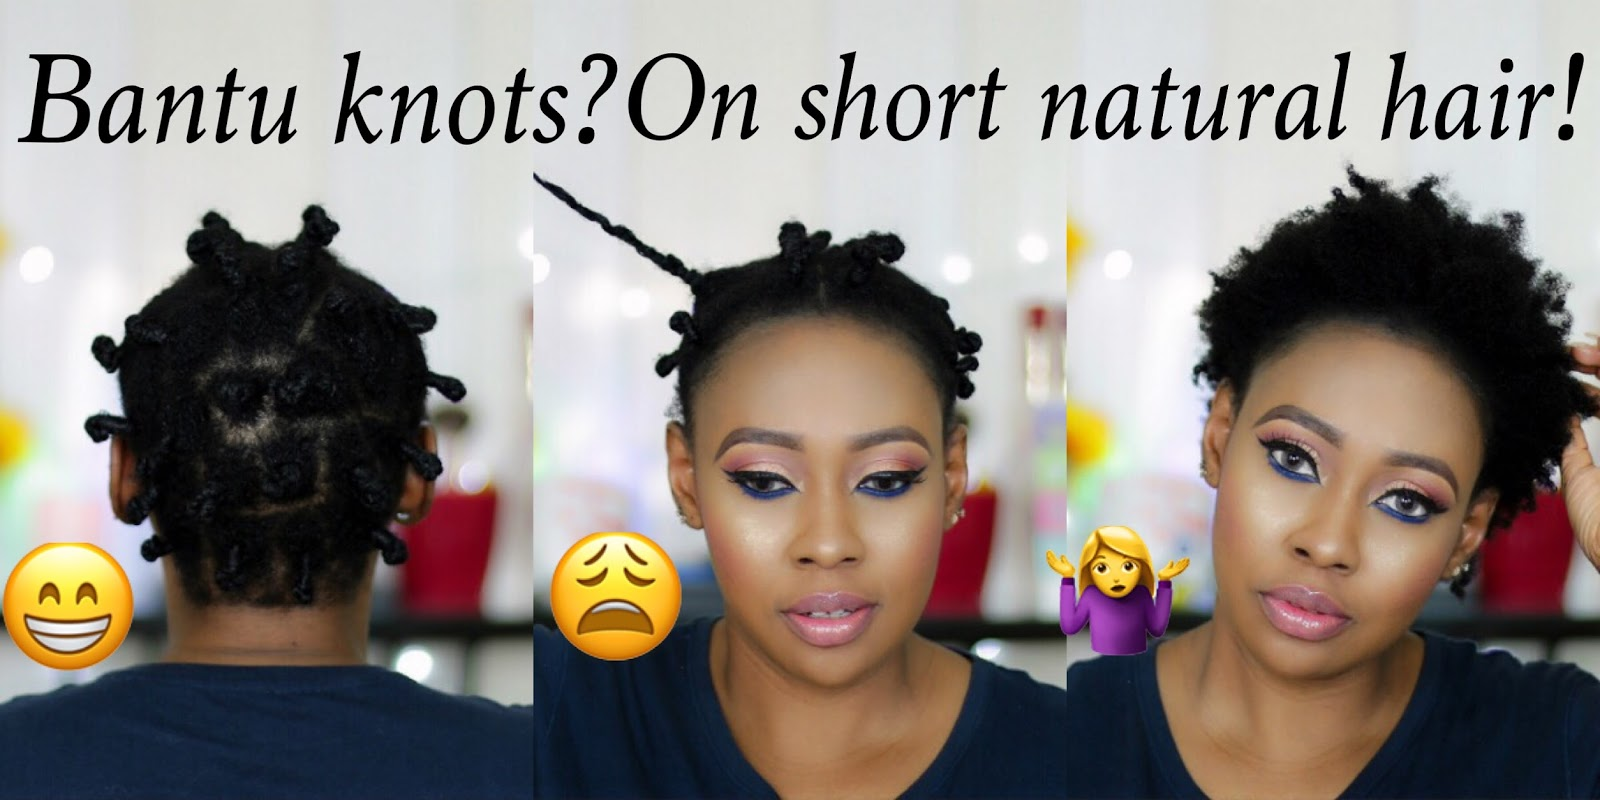 Bantu knots on short natural hair chloes makeover bantu knots on short natural hair thecheapjerseys Image collections